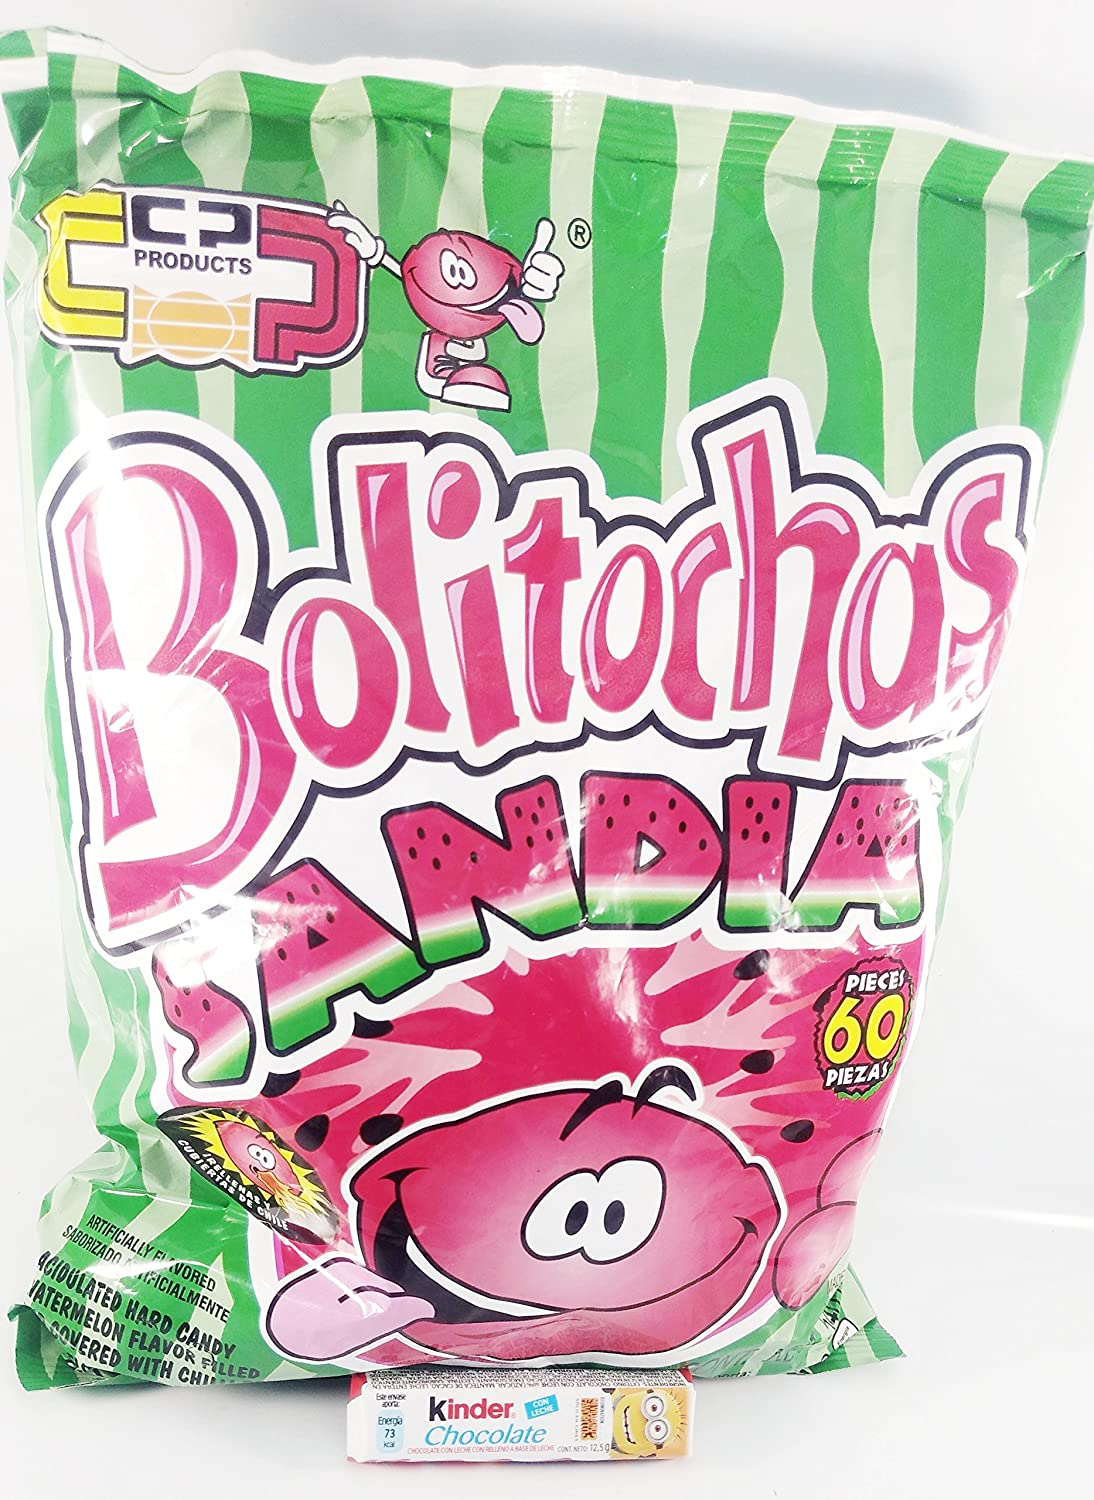 Amazon.com: BOLITOCHAS WATERMELON FLAVOR 60 pz with Free Chocolate Kinder Bar included: Toys & Games